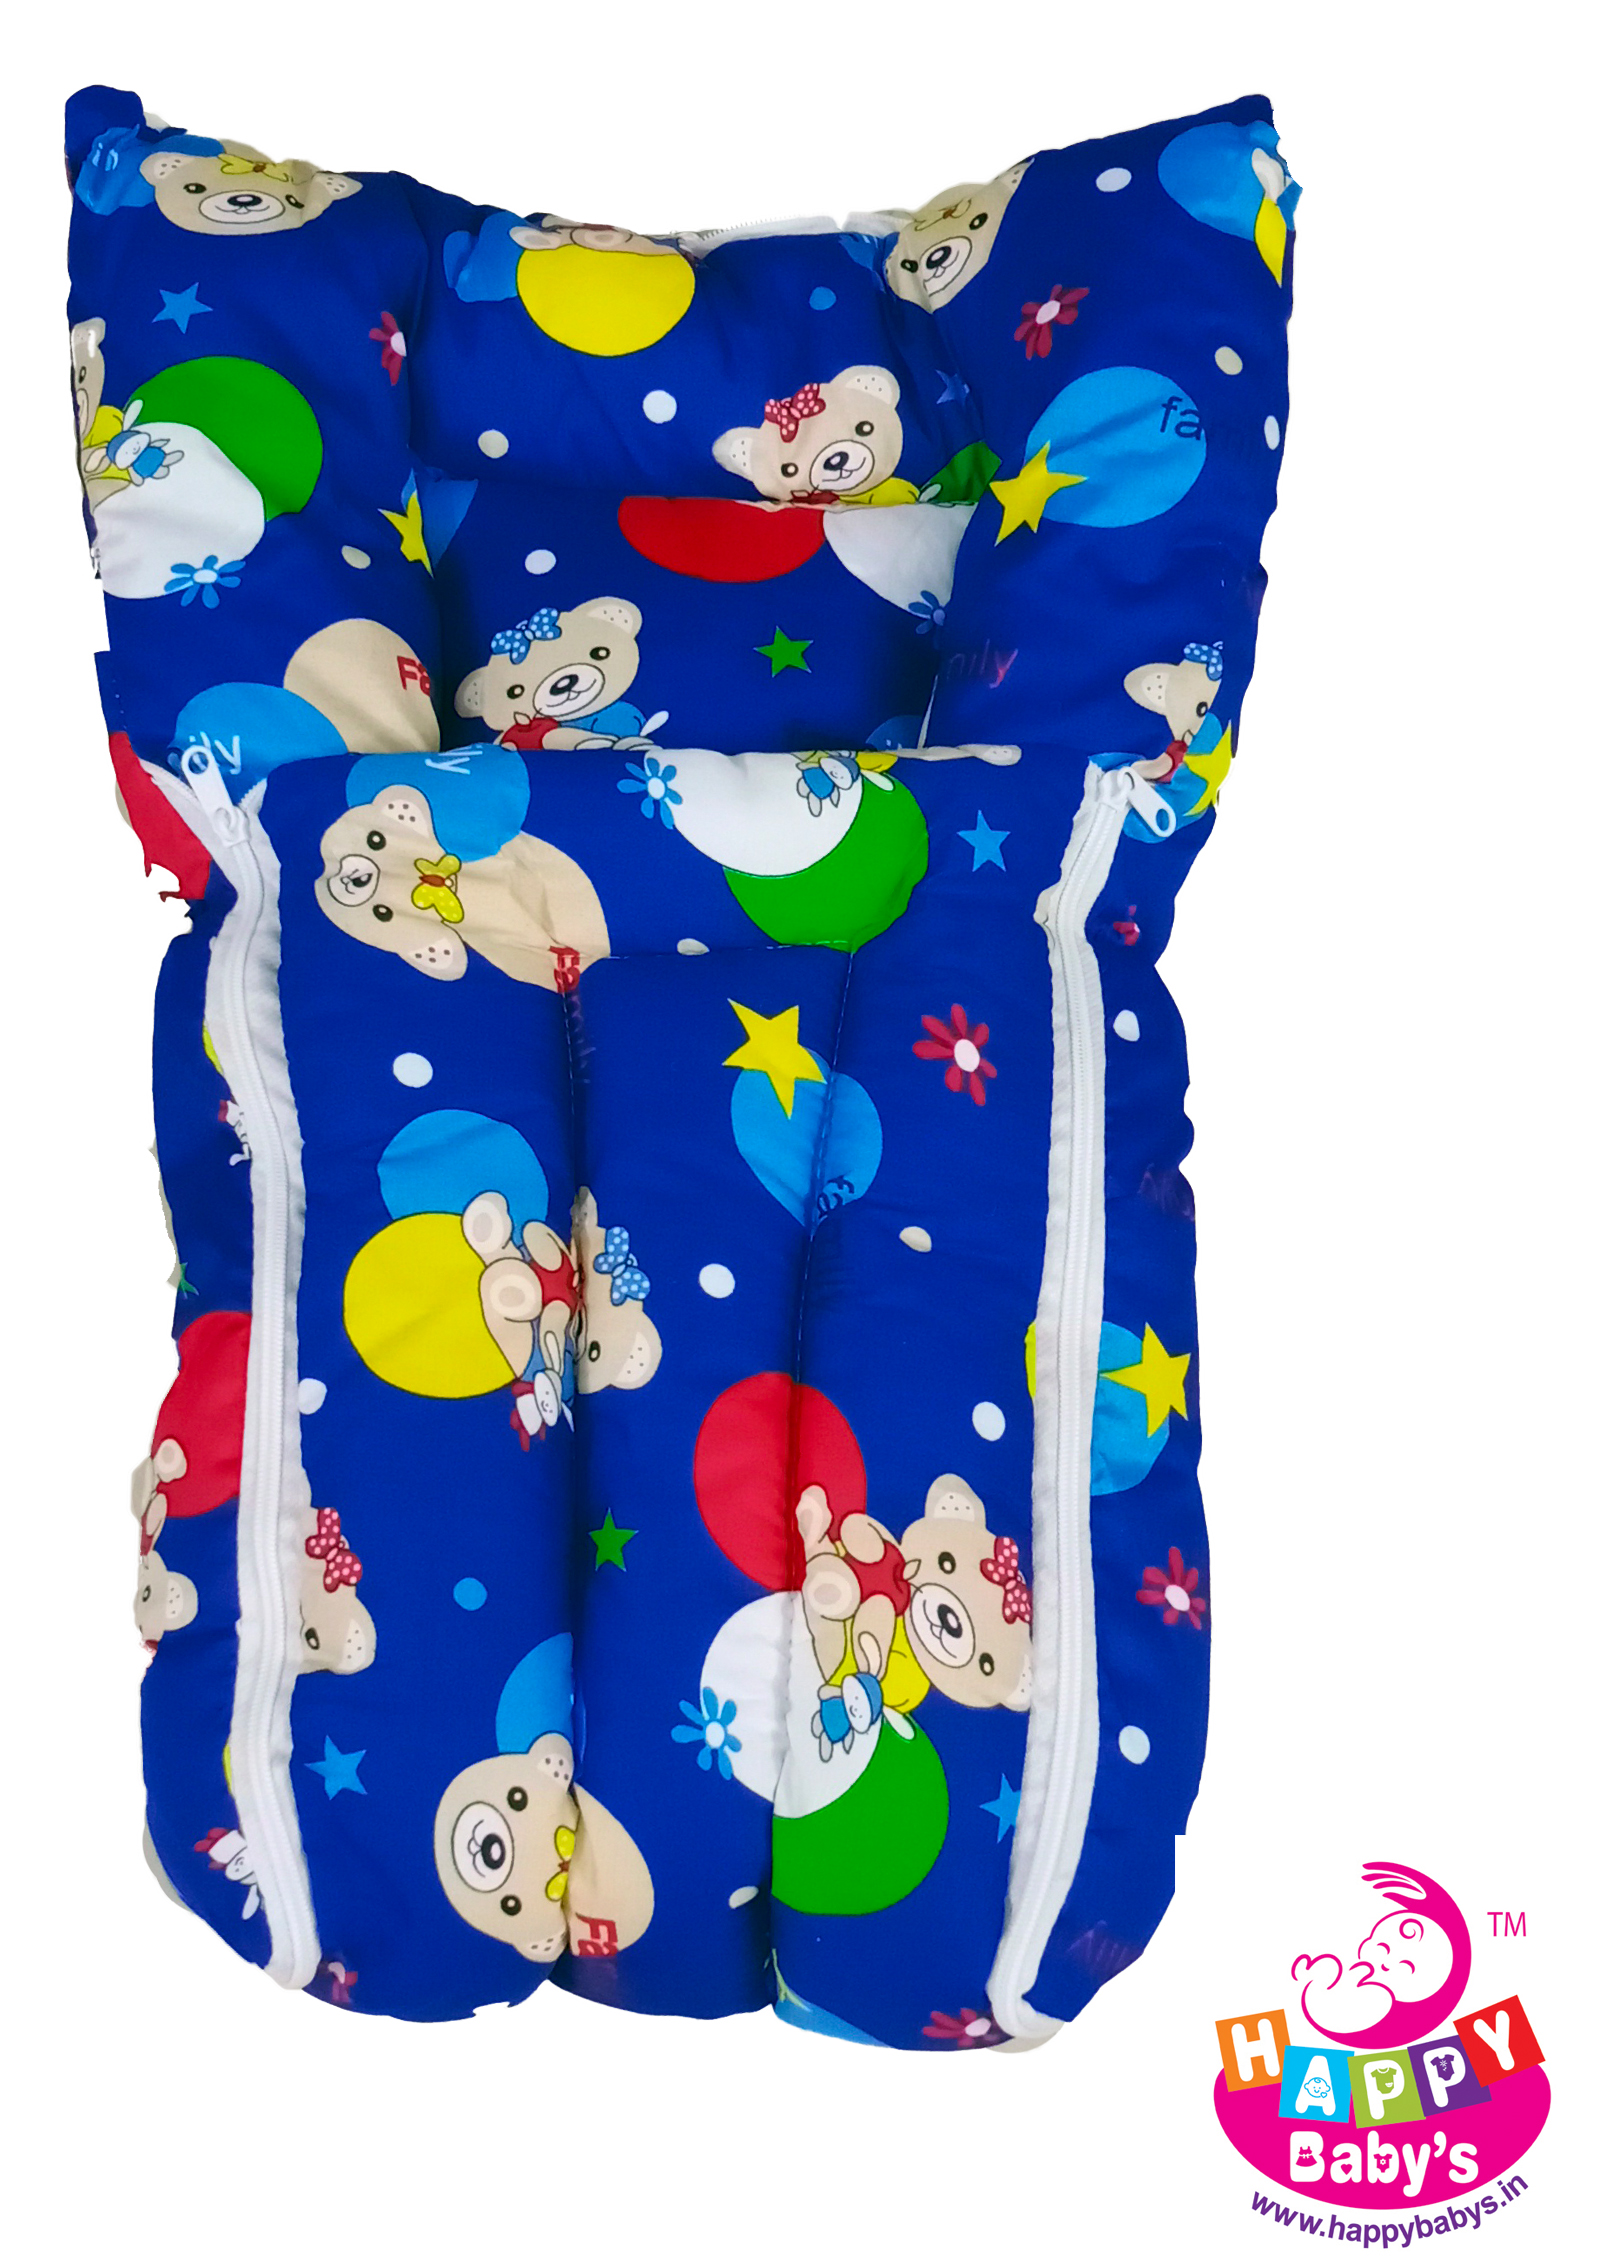 Happy Baby's Comfort Zipper Carry Bed For Carrying New Born Baby's | Pack Of 6 Beds | Cozy And Comfortable To Carry | Per Bed :Rs105